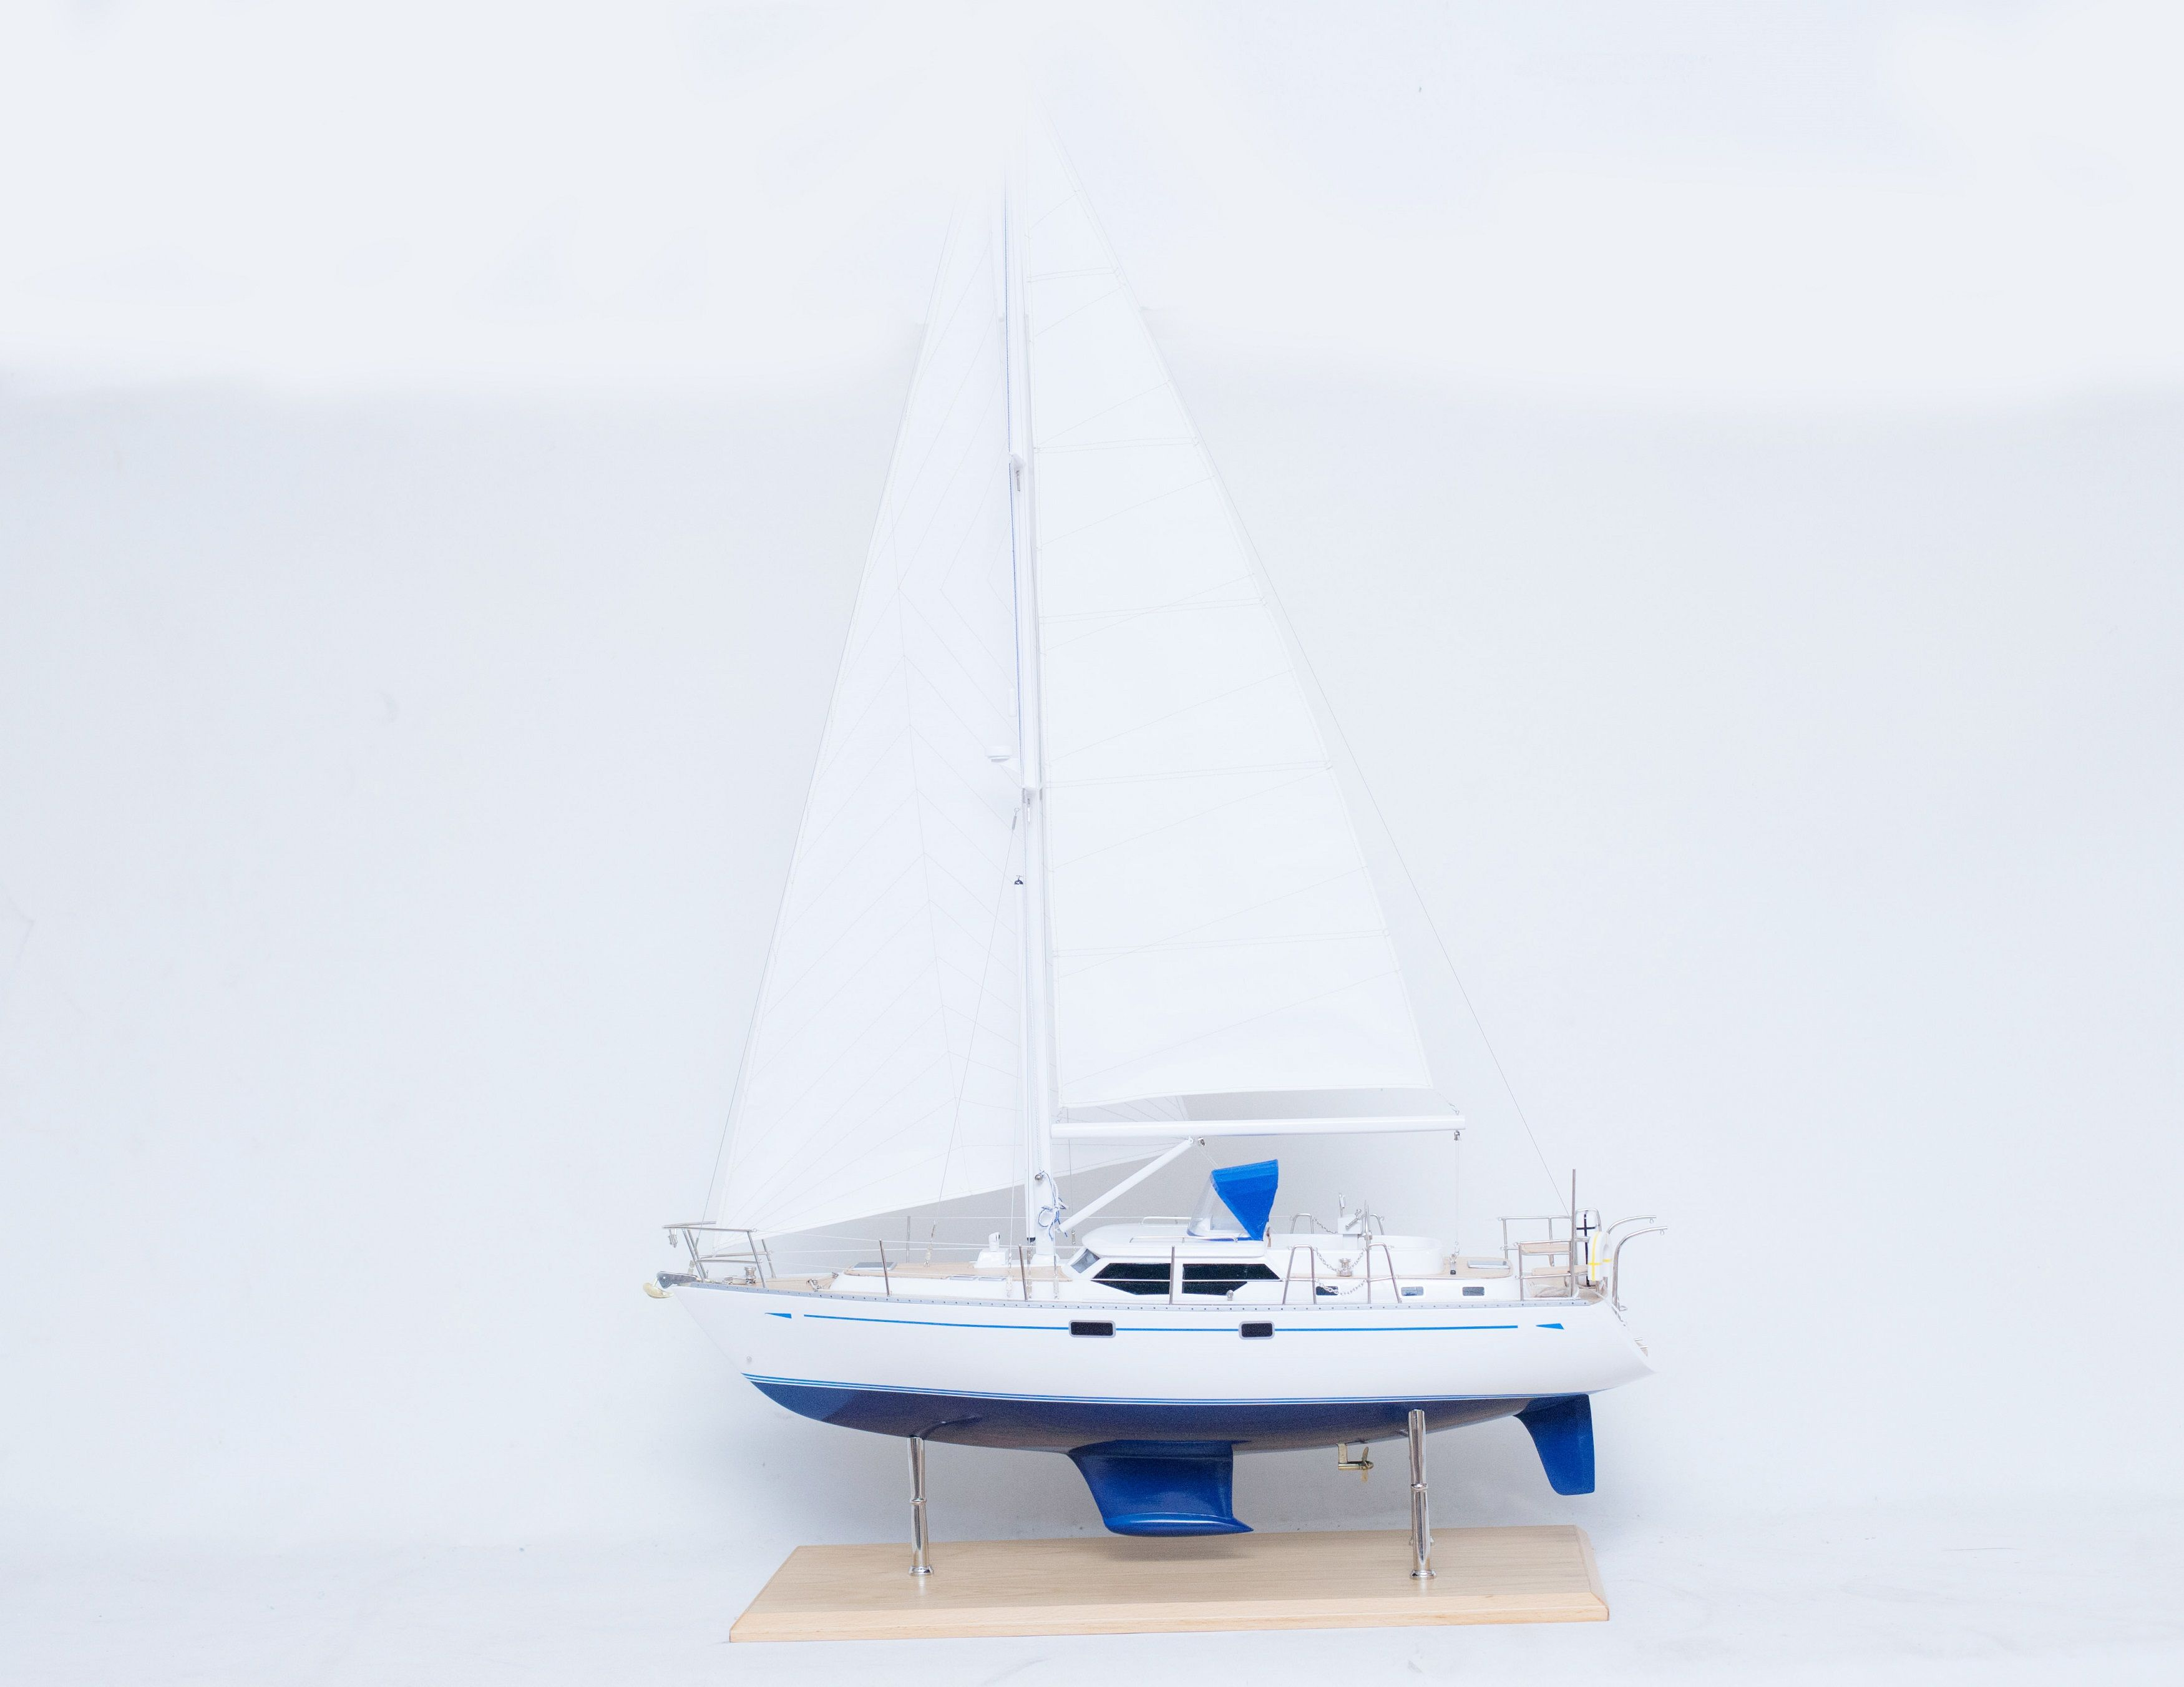 1777-9961-Oyster-45-Sailing-Yacht